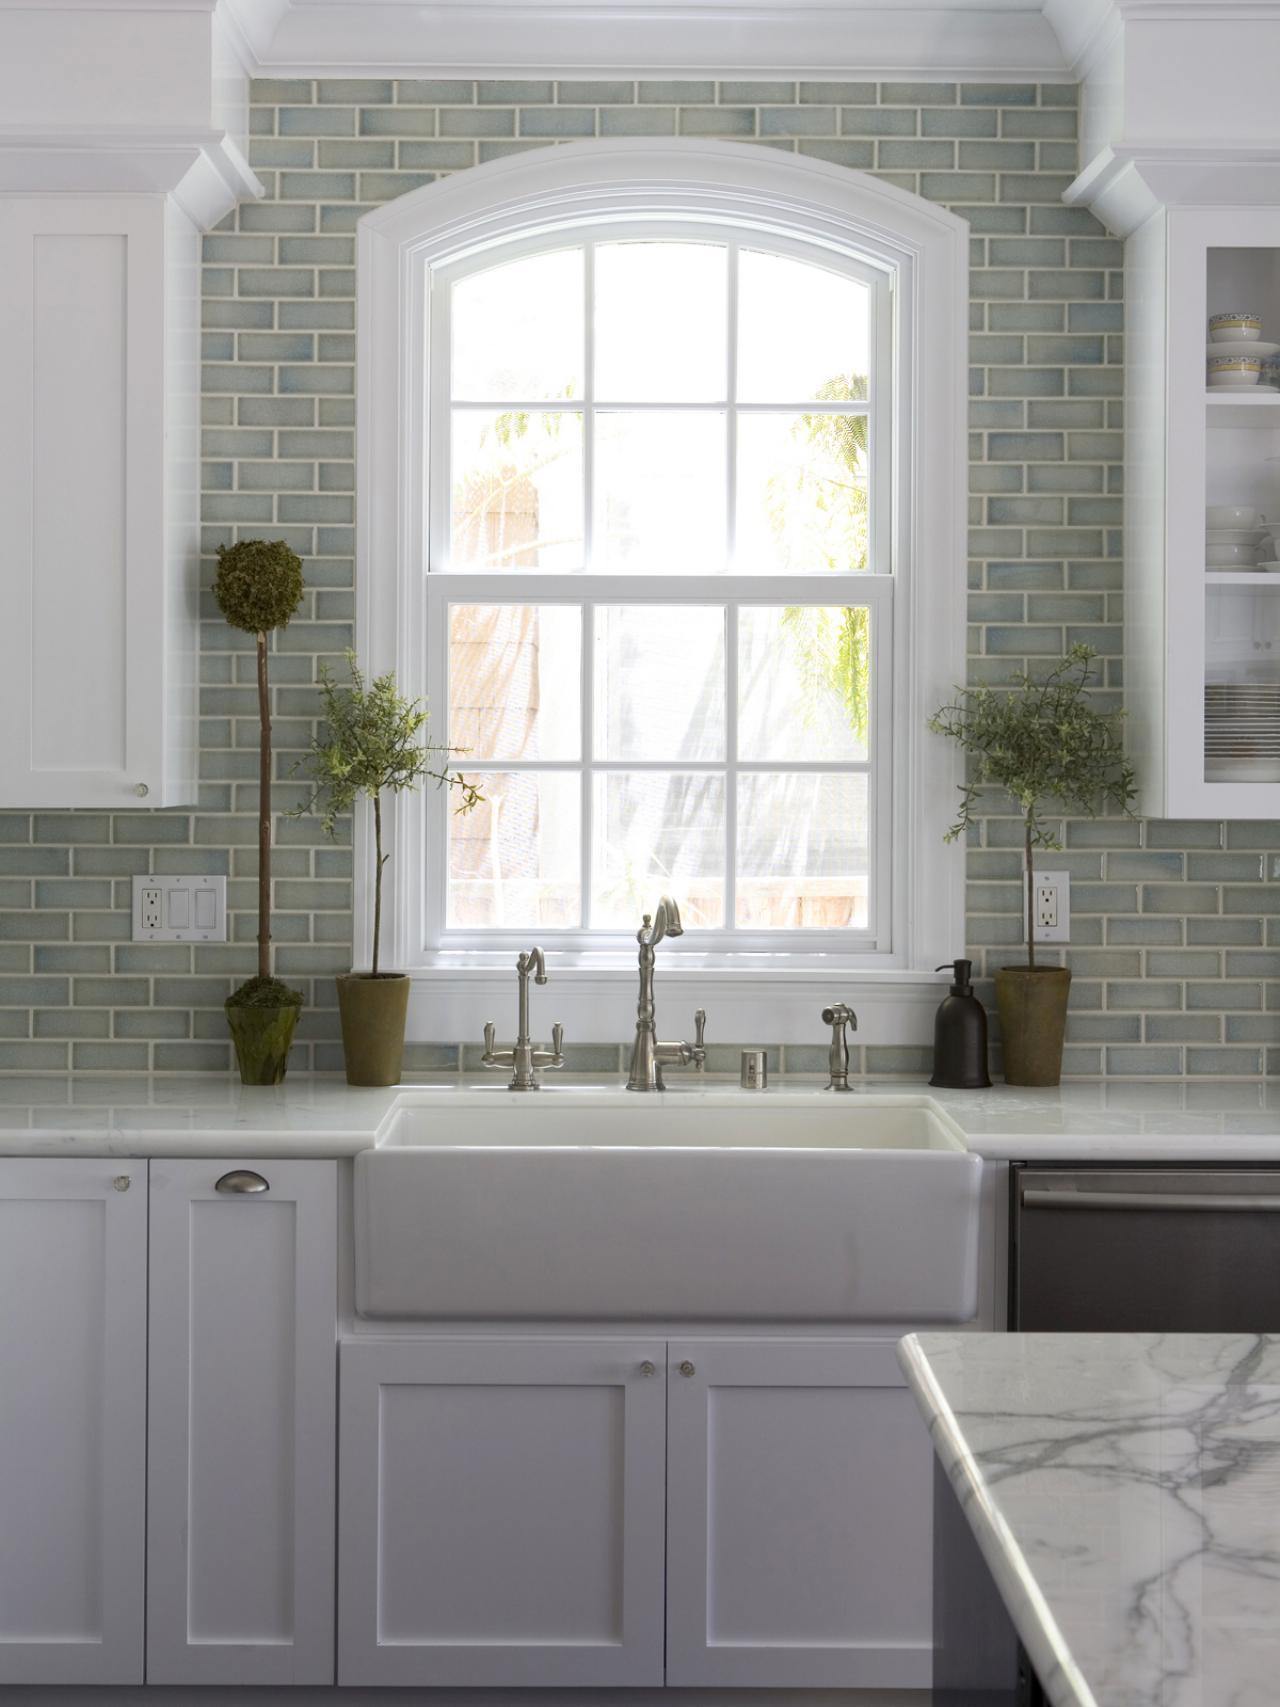 DP_Fiorella-Design-White-Kitchen-Sink_s3x4.jpg.rend.hgtvcom.1280.1707